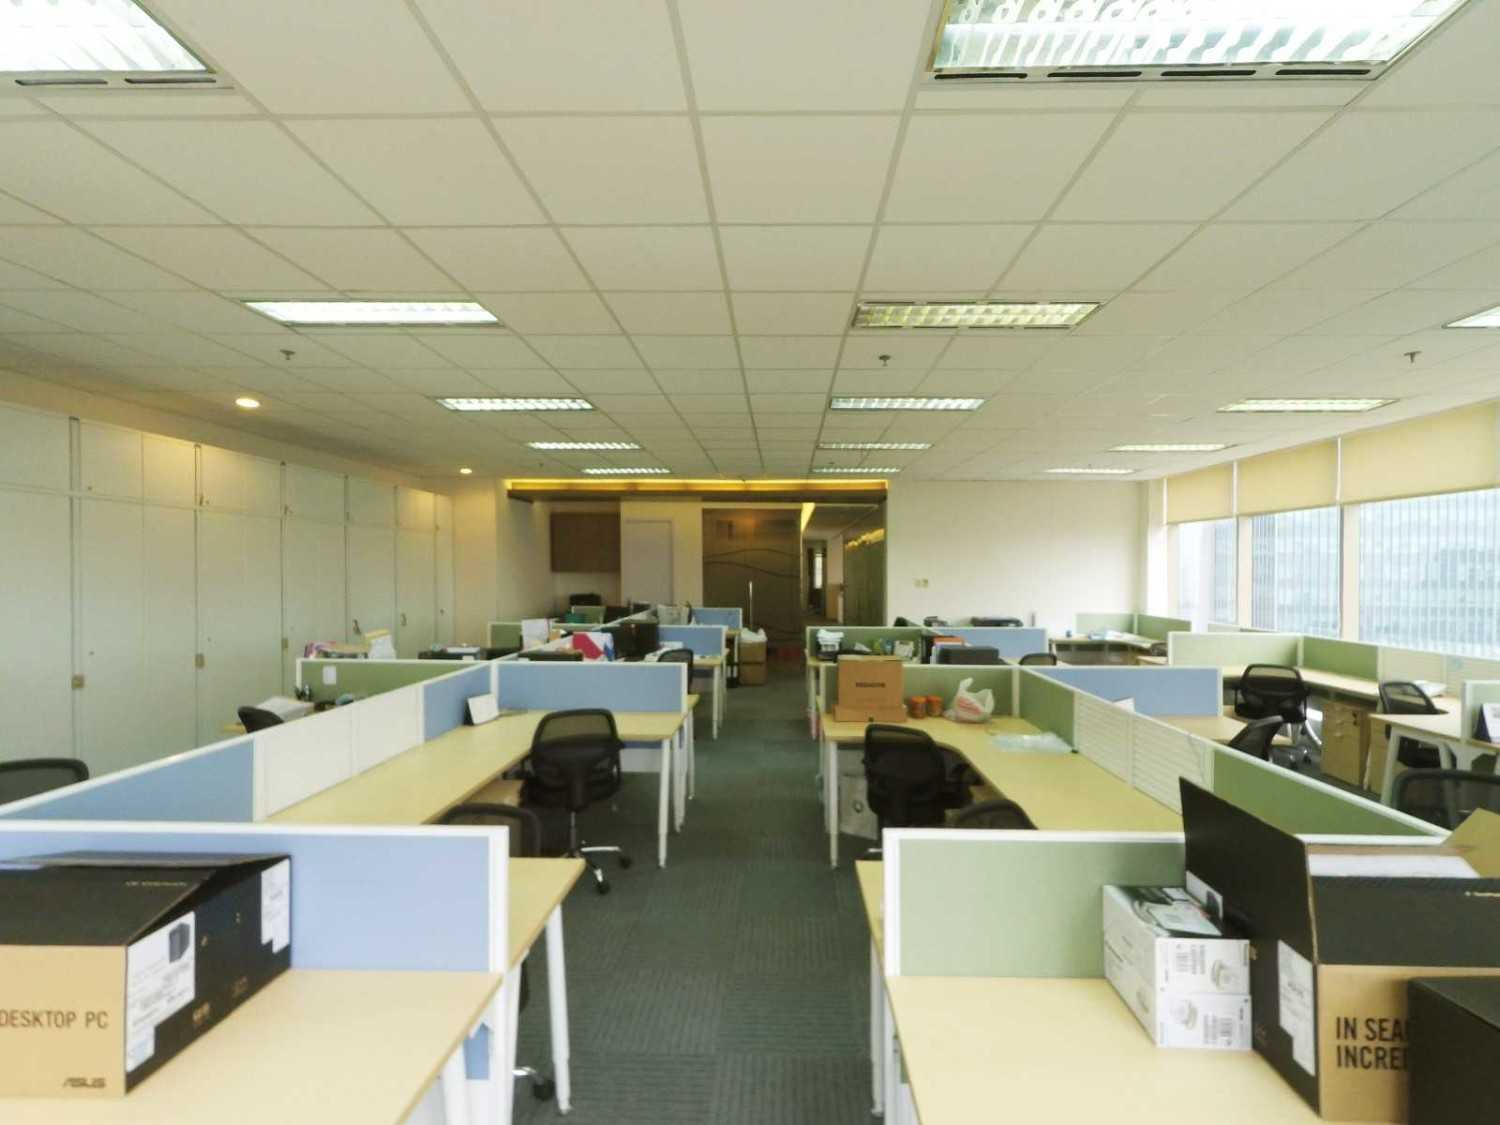 Arkadia Works Sekar Bumi Office Renovation Plaza Asia 21St Floor Plaza Asia 21St Floor Staff Area  14080